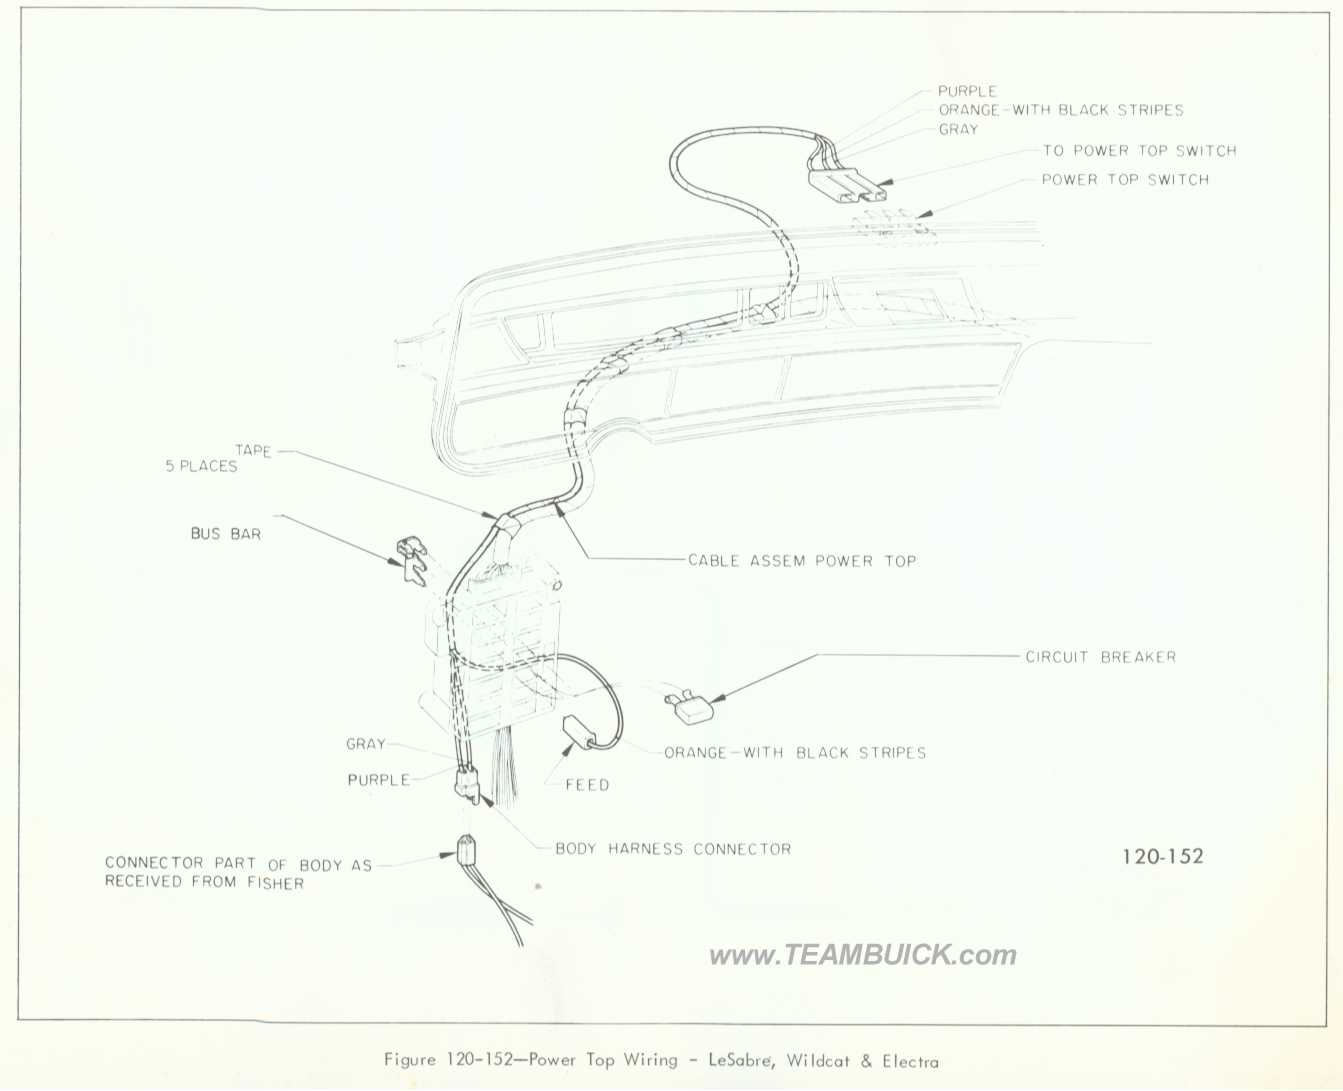 1966 buick wildcat wiring diagram context scope lesabre electra power top